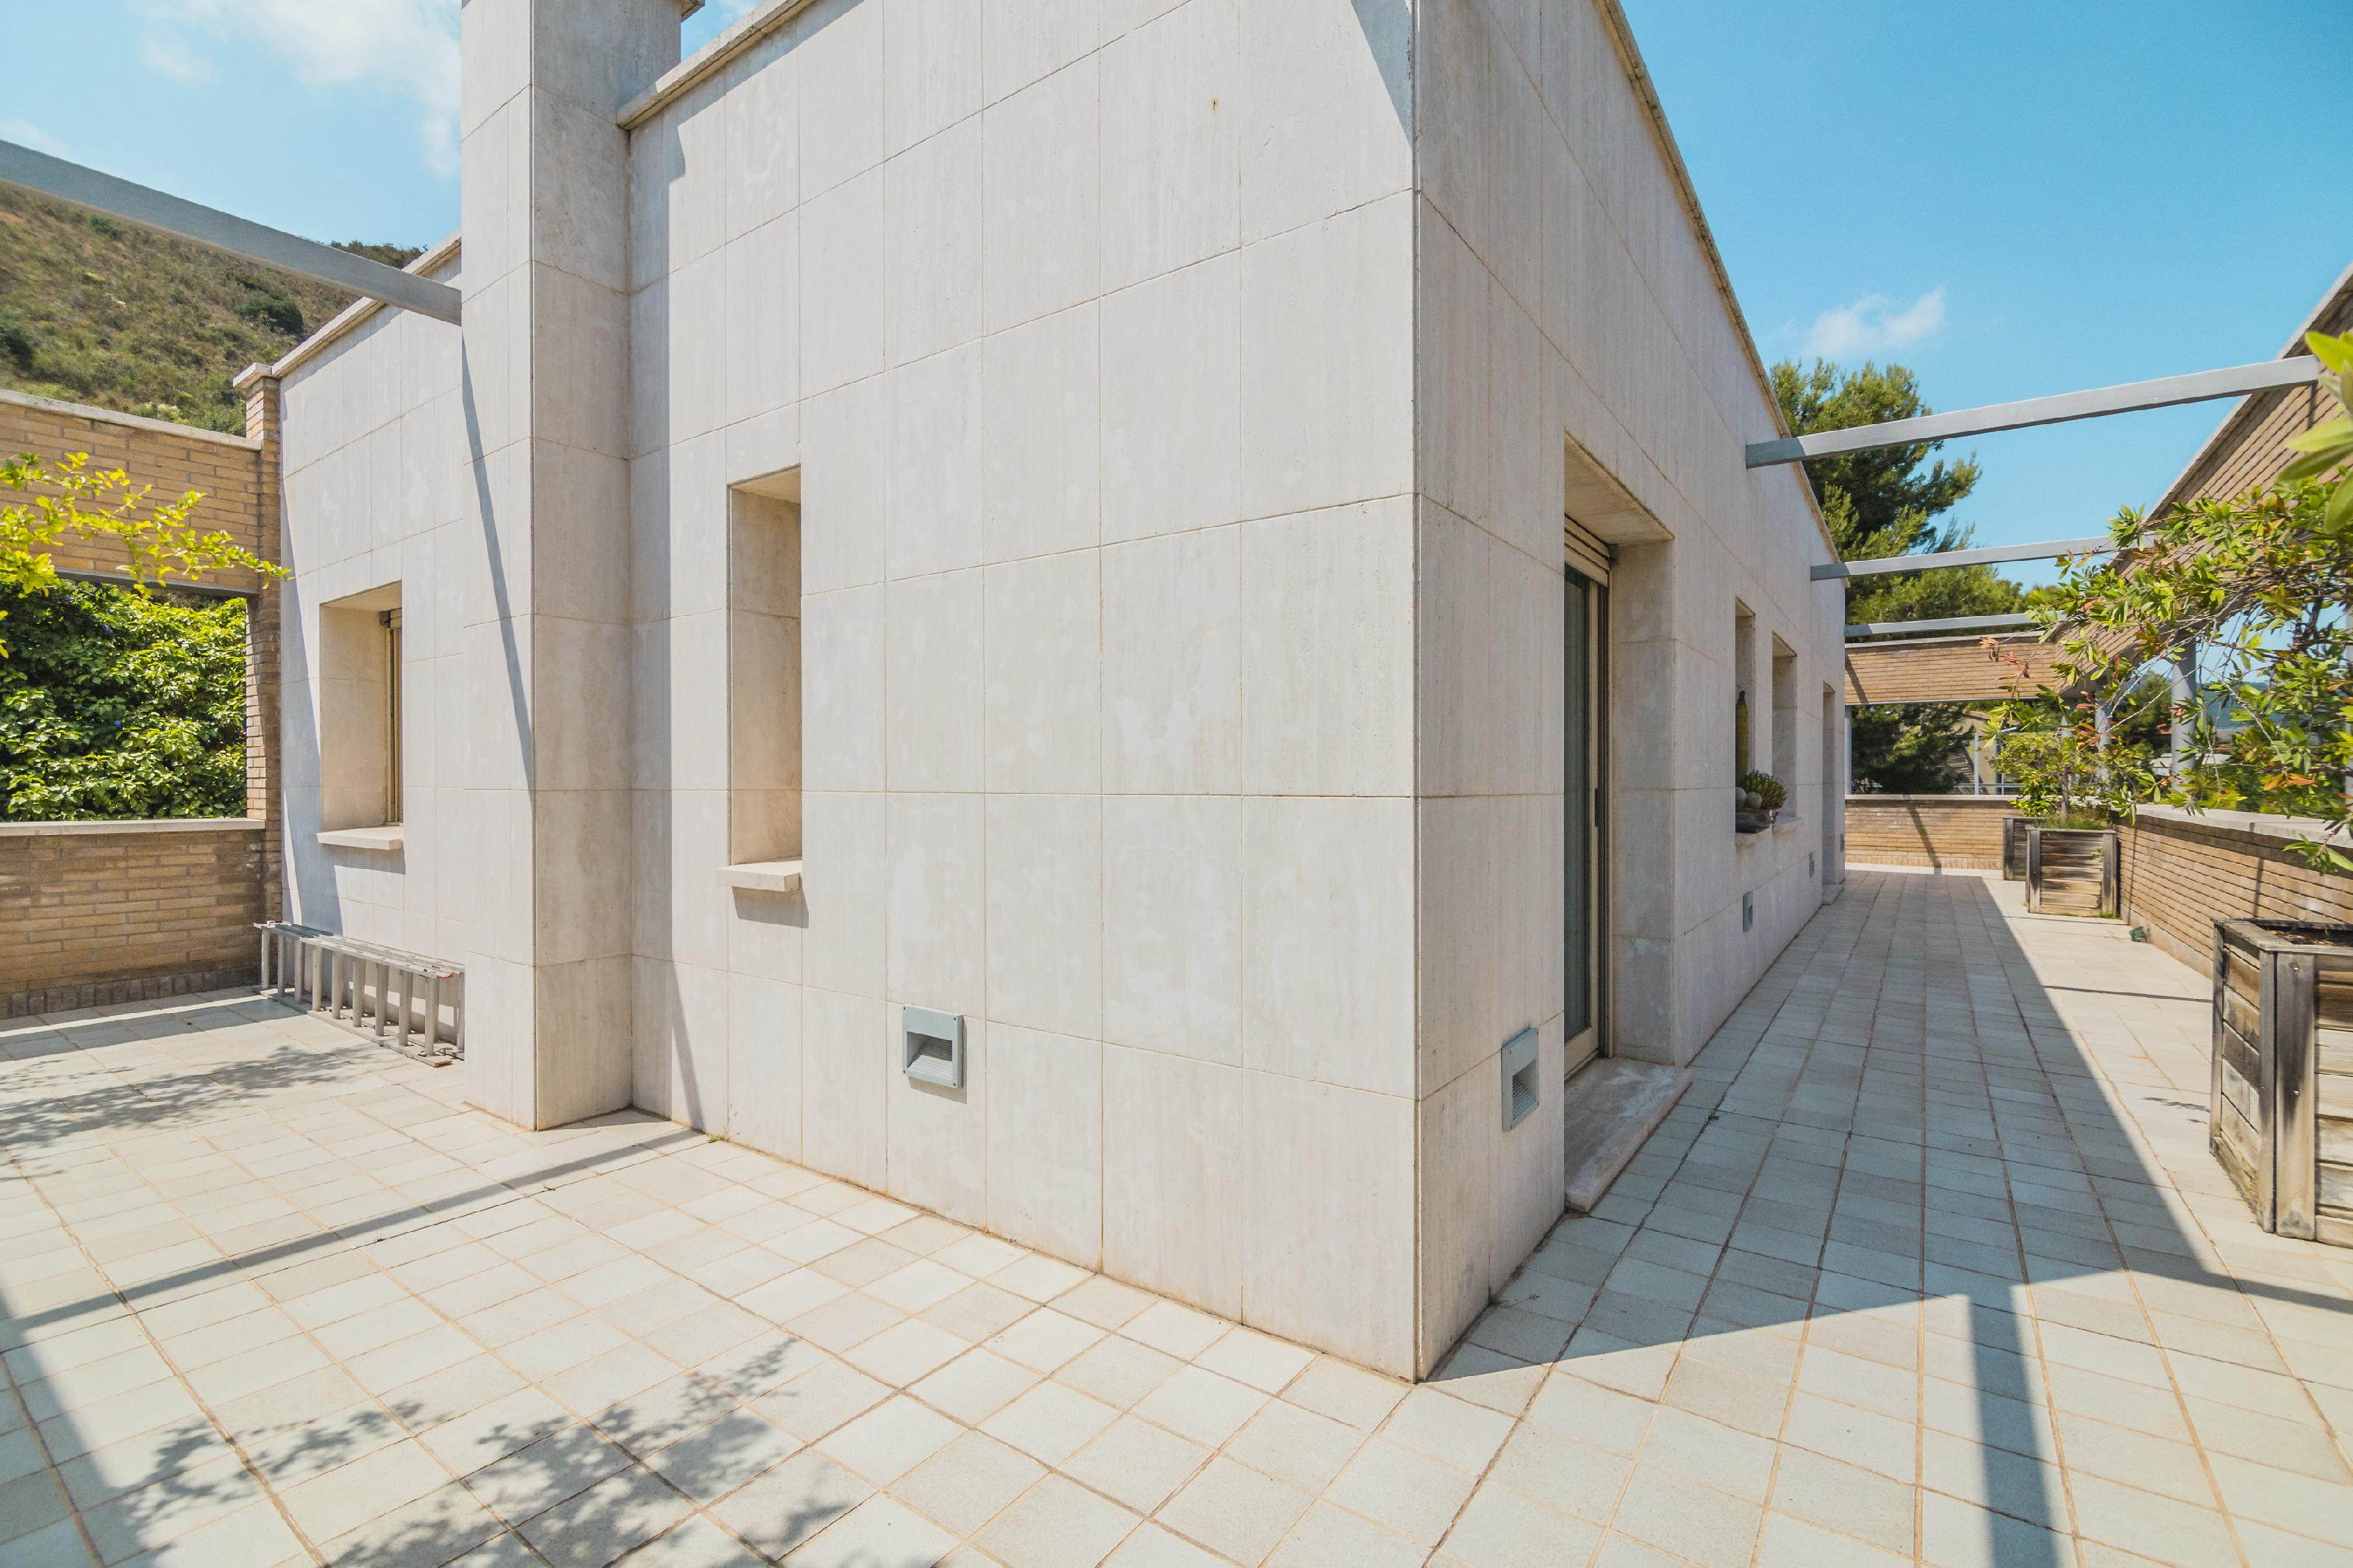 226231 House for sale in Les Corts, Pedralbes 32